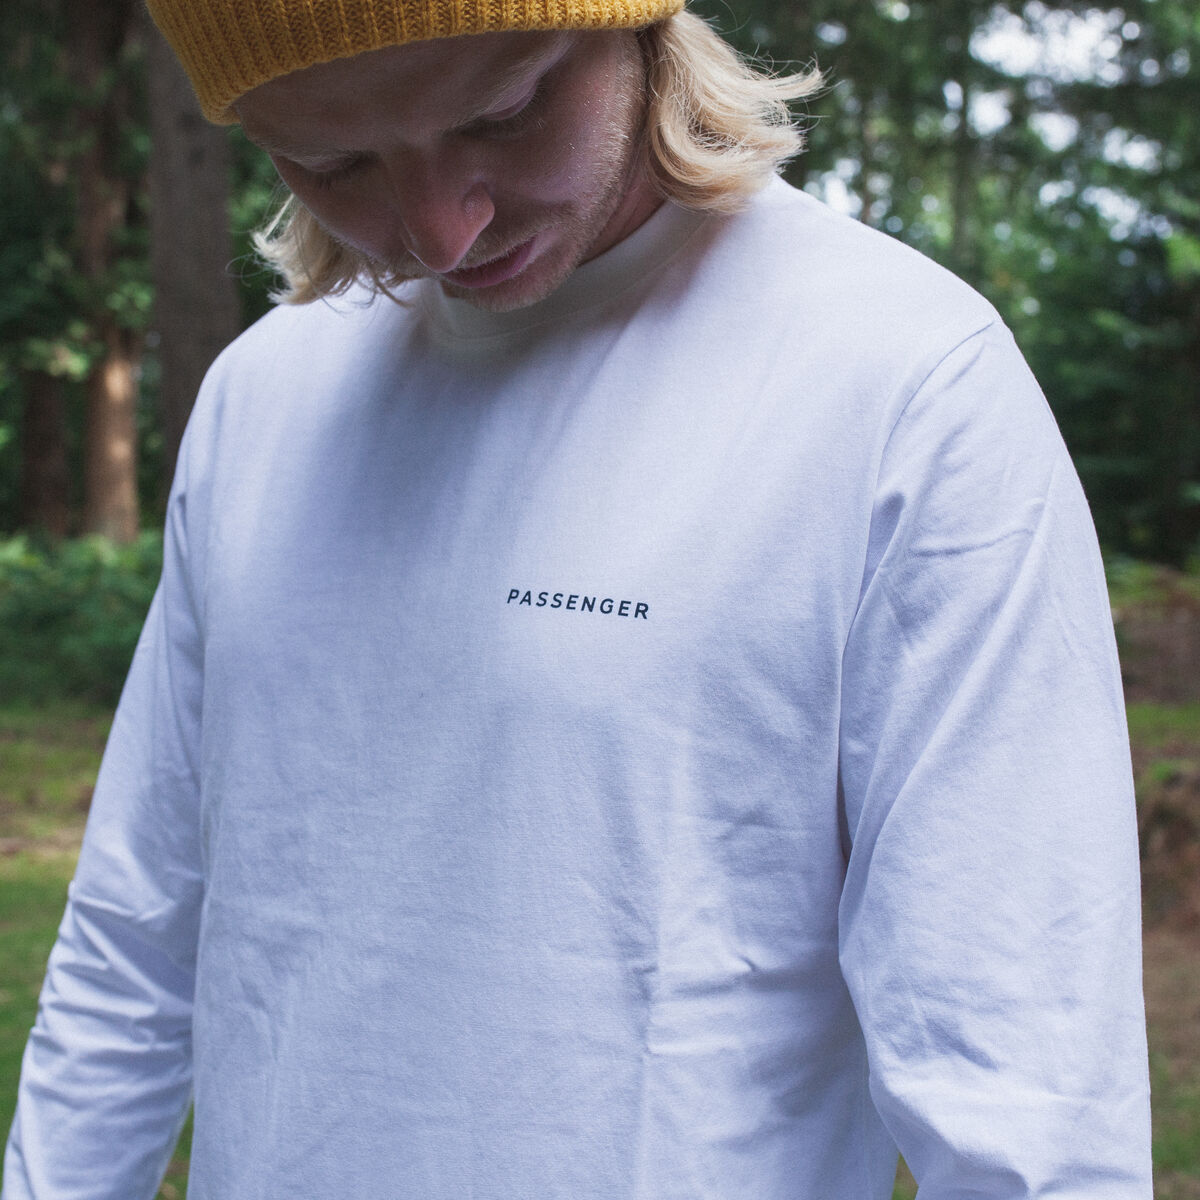 Made to Roam L/S T-Shirt - White image 4